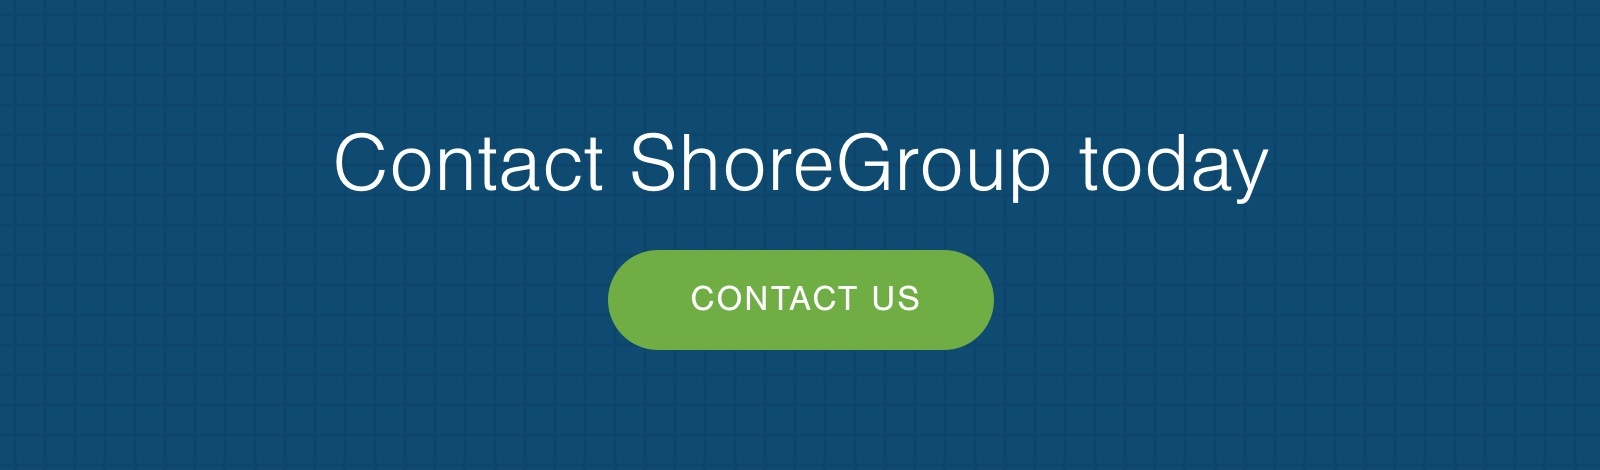 Contact ShoreGroup CTA Image